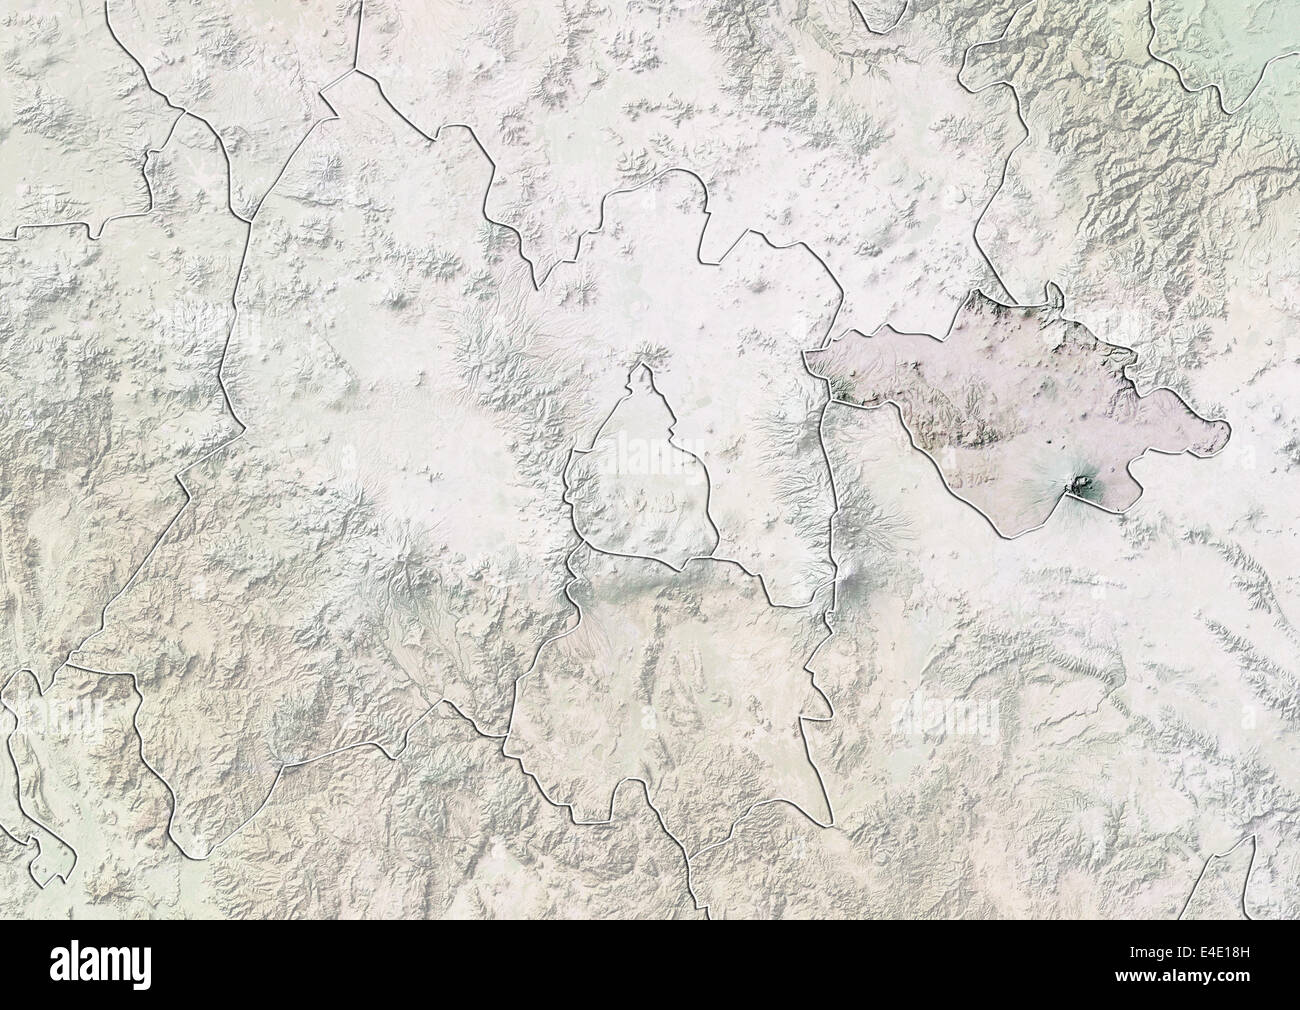 State Of Tlaxcala Mexico Relief Map Stock Photo 71608449 Alamy